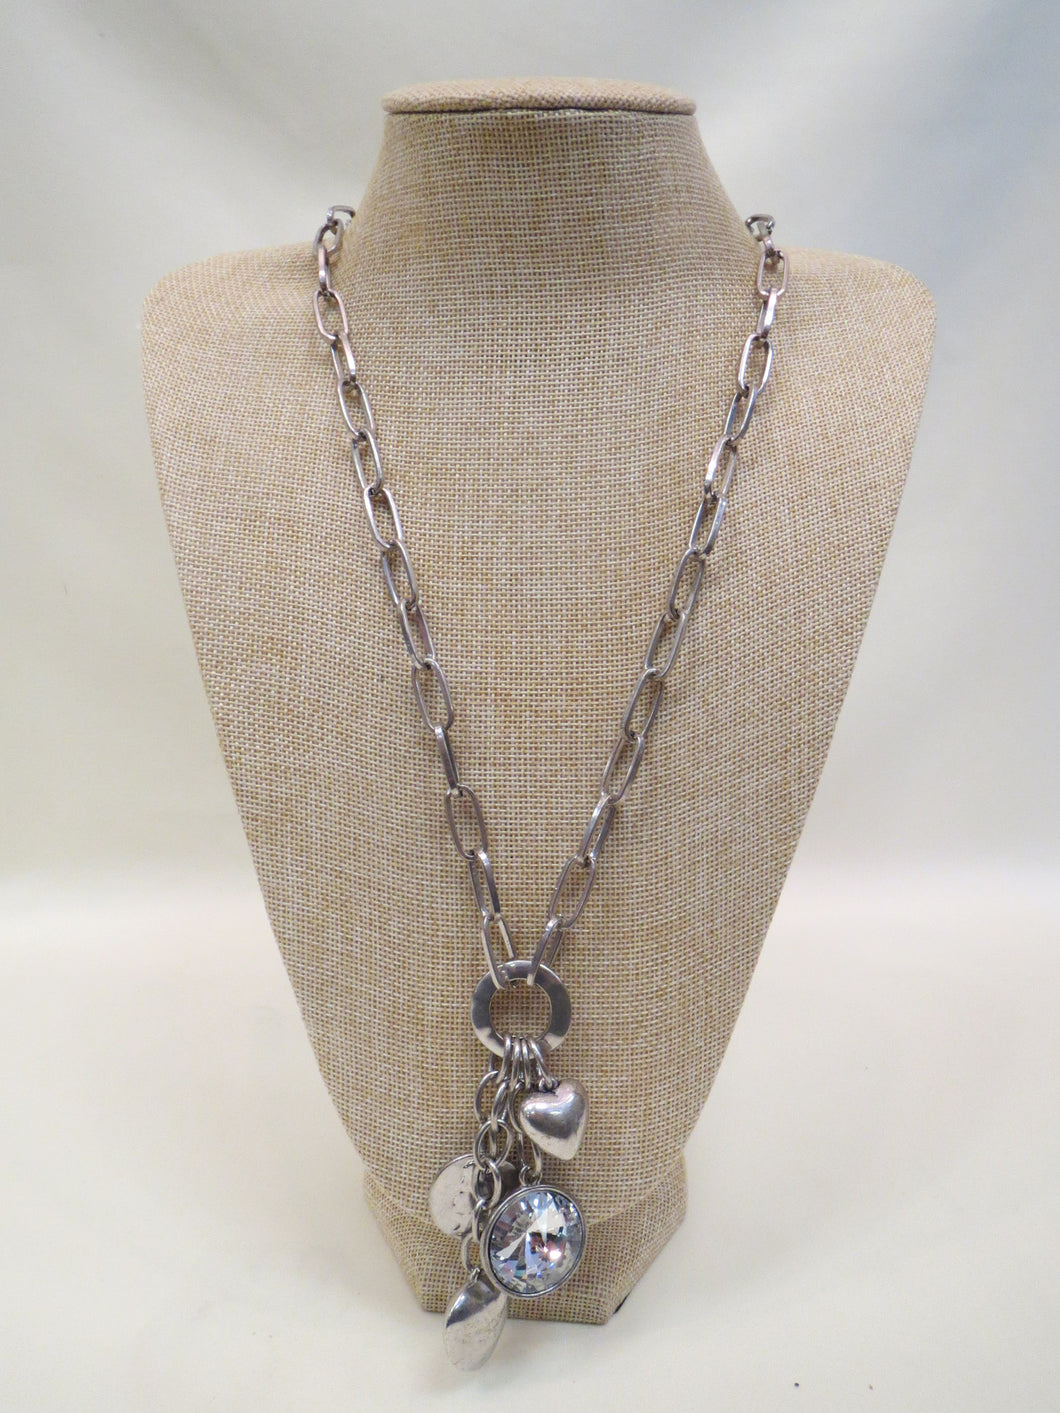 ADO Long Silver Chain Necklace with Pendant | All Dec'd Out